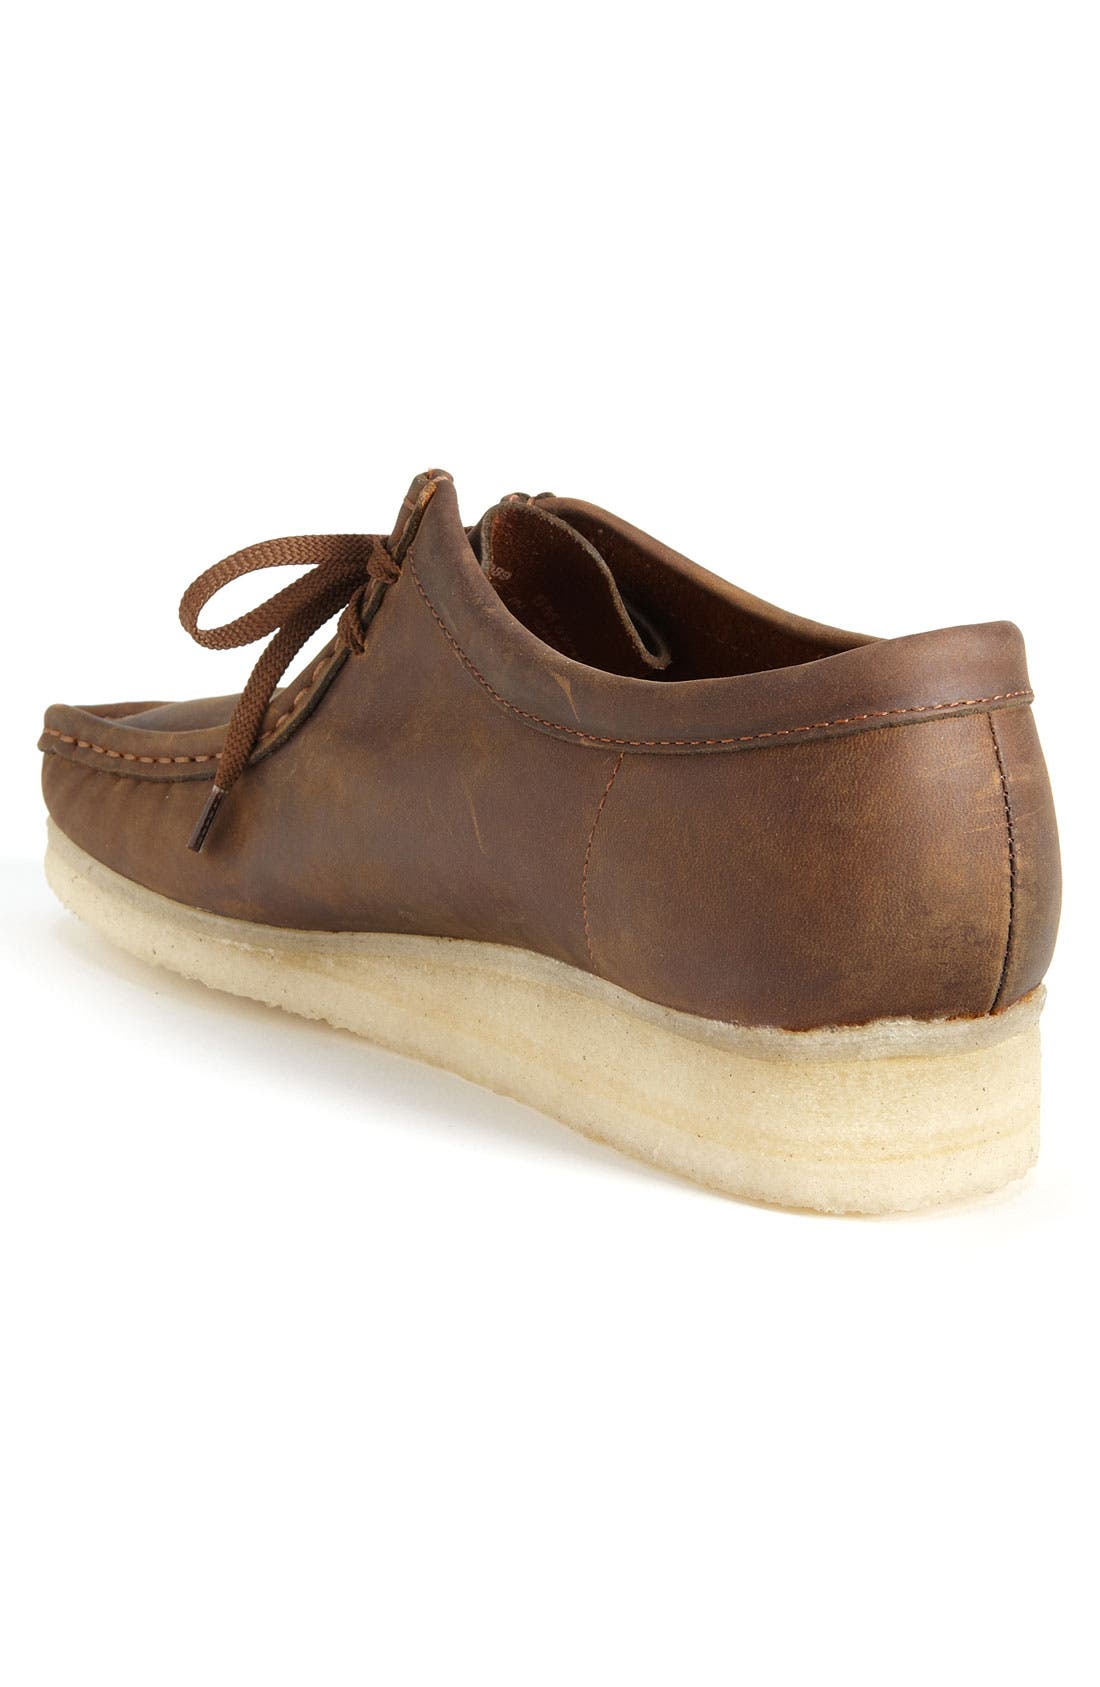 'Wallabee' Moc Toe Derby (Online Only),                             Alternate thumbnail 2, color,                             215